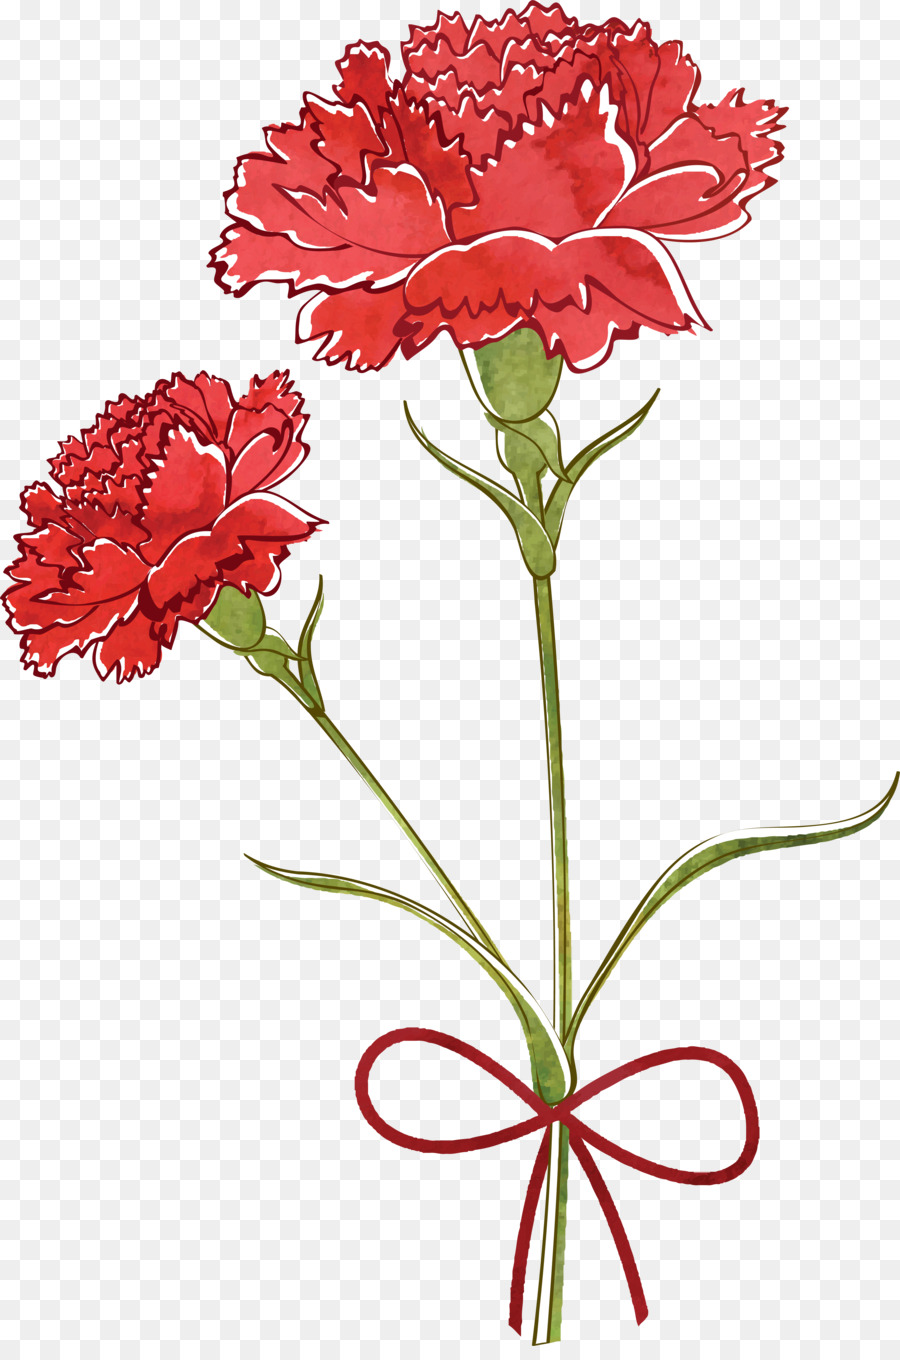 Carnation Flower Drawing at GetDrawings.com | Free for personal use ...